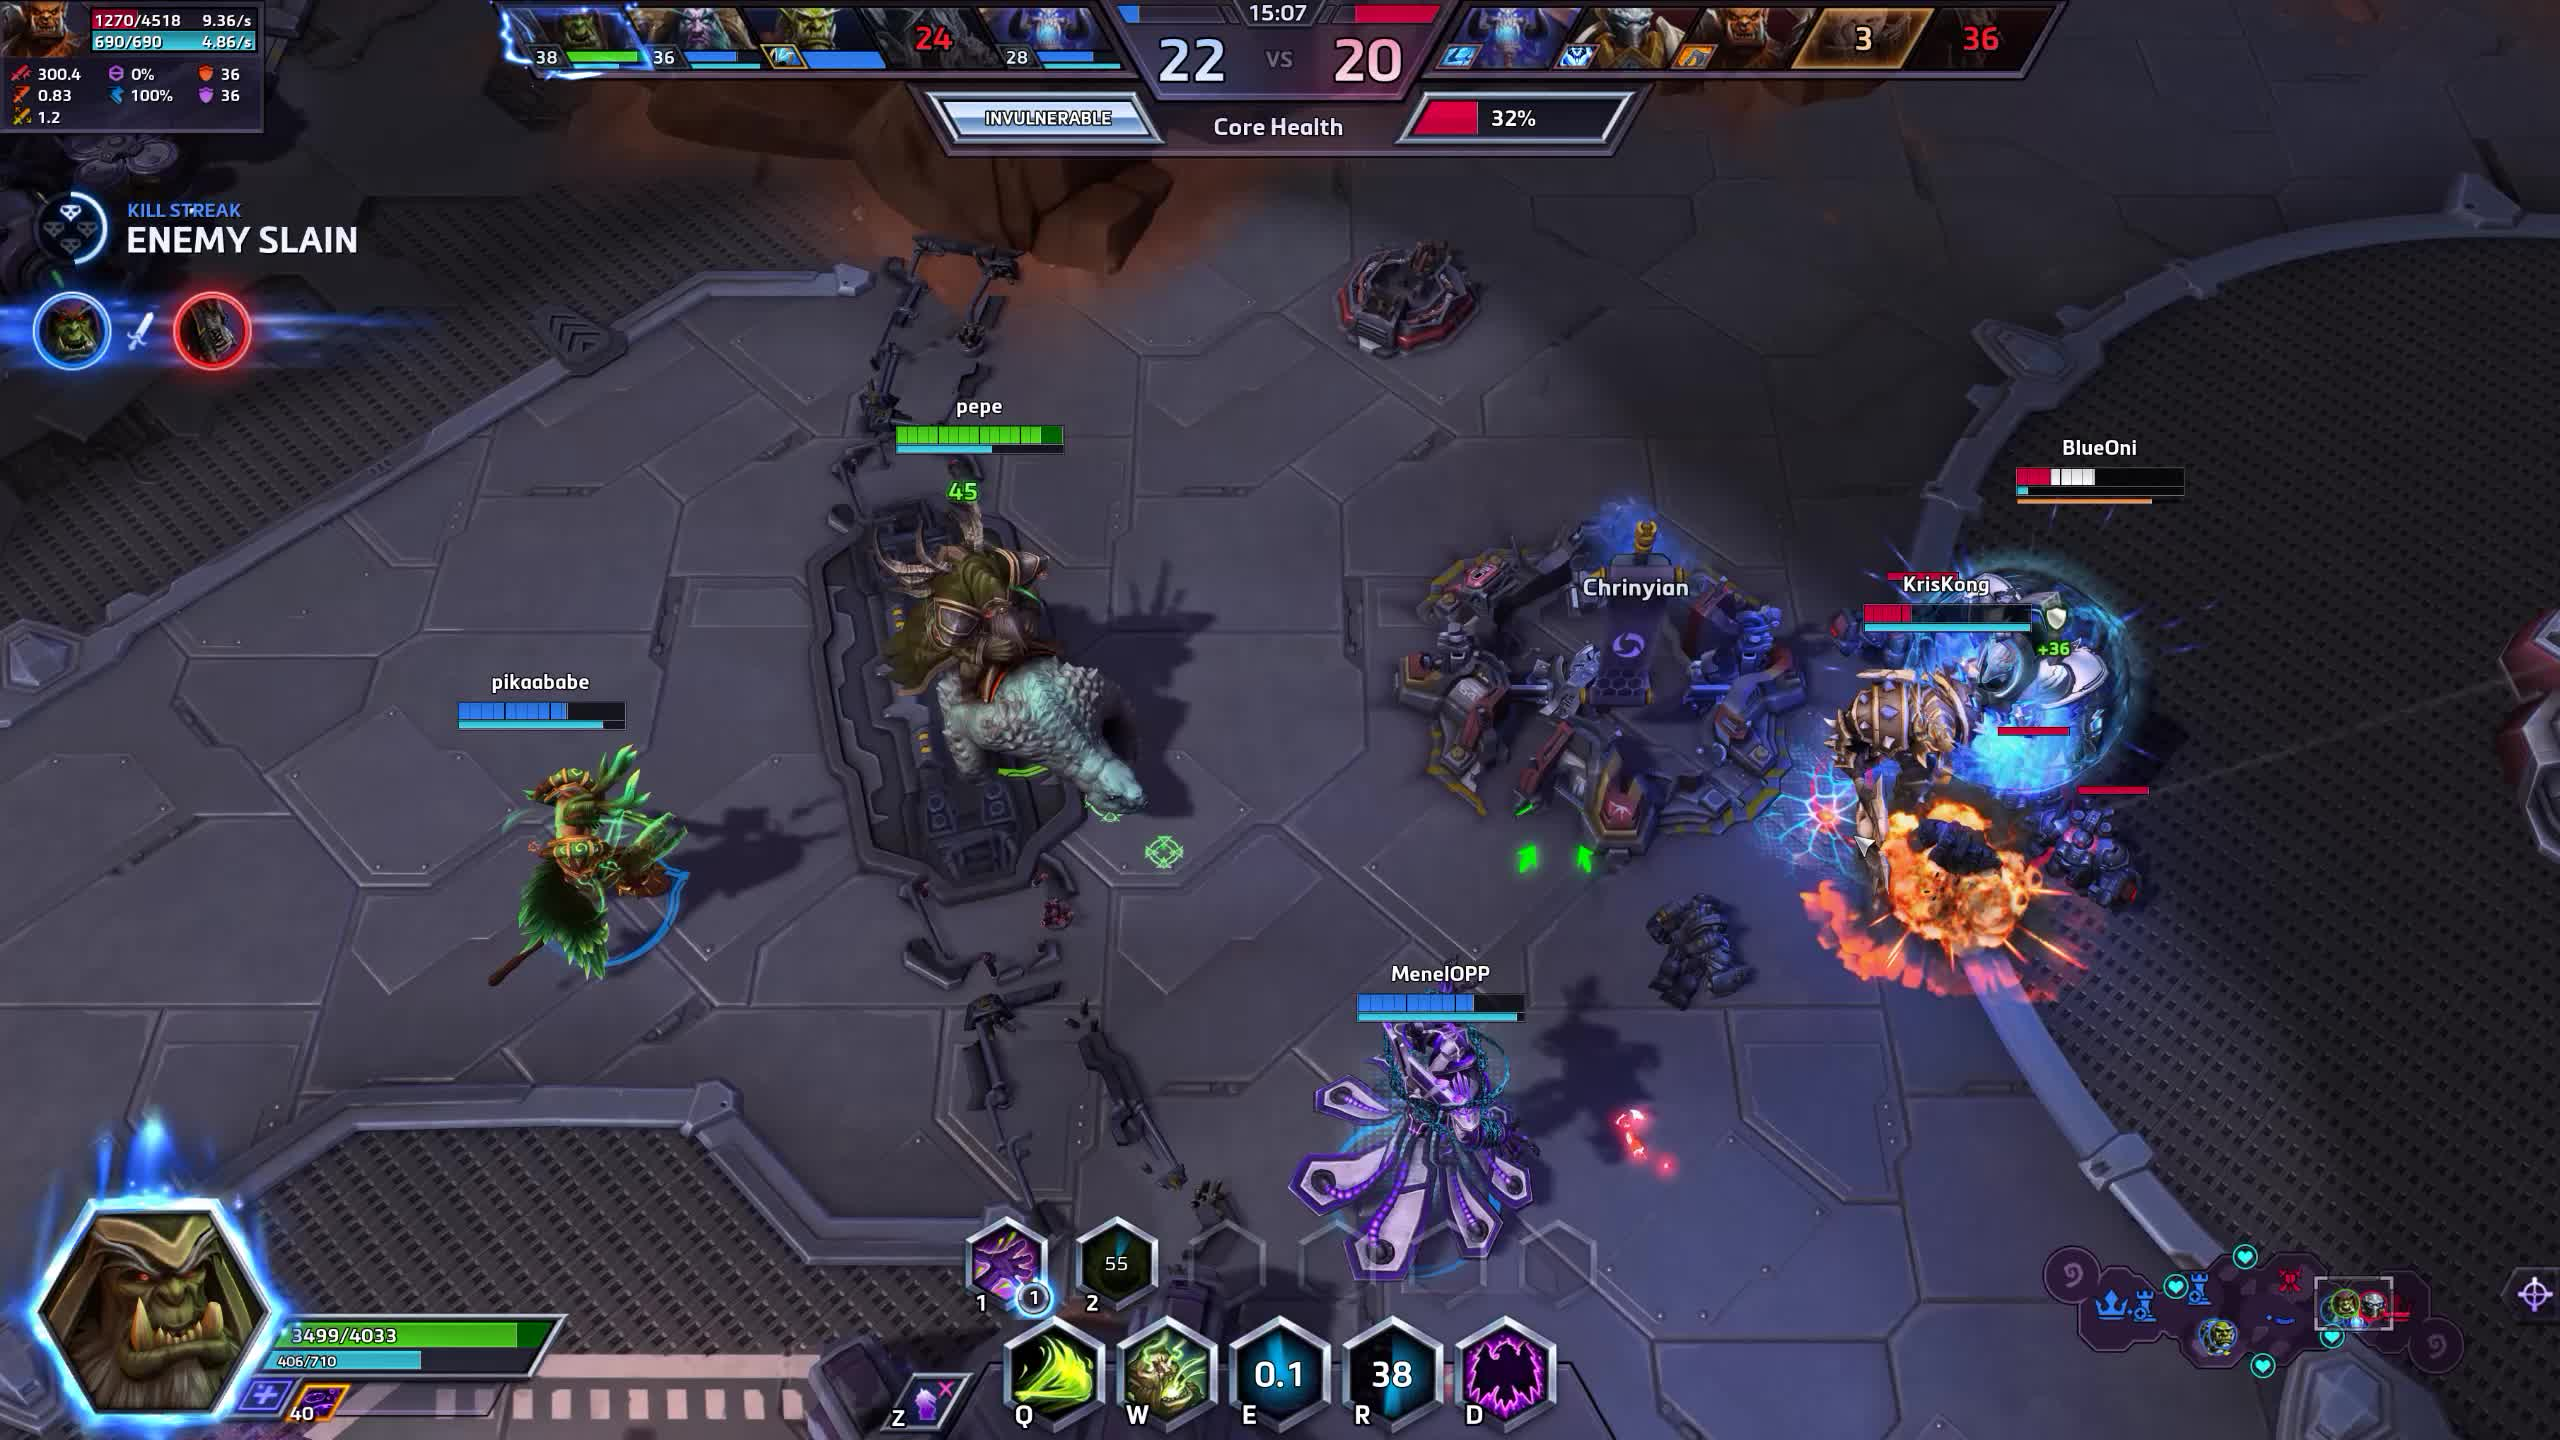 heroesofthestorm, Heroes of the Storm 2018.09.03 - 15.52.15.32.DVR Trim GIFs